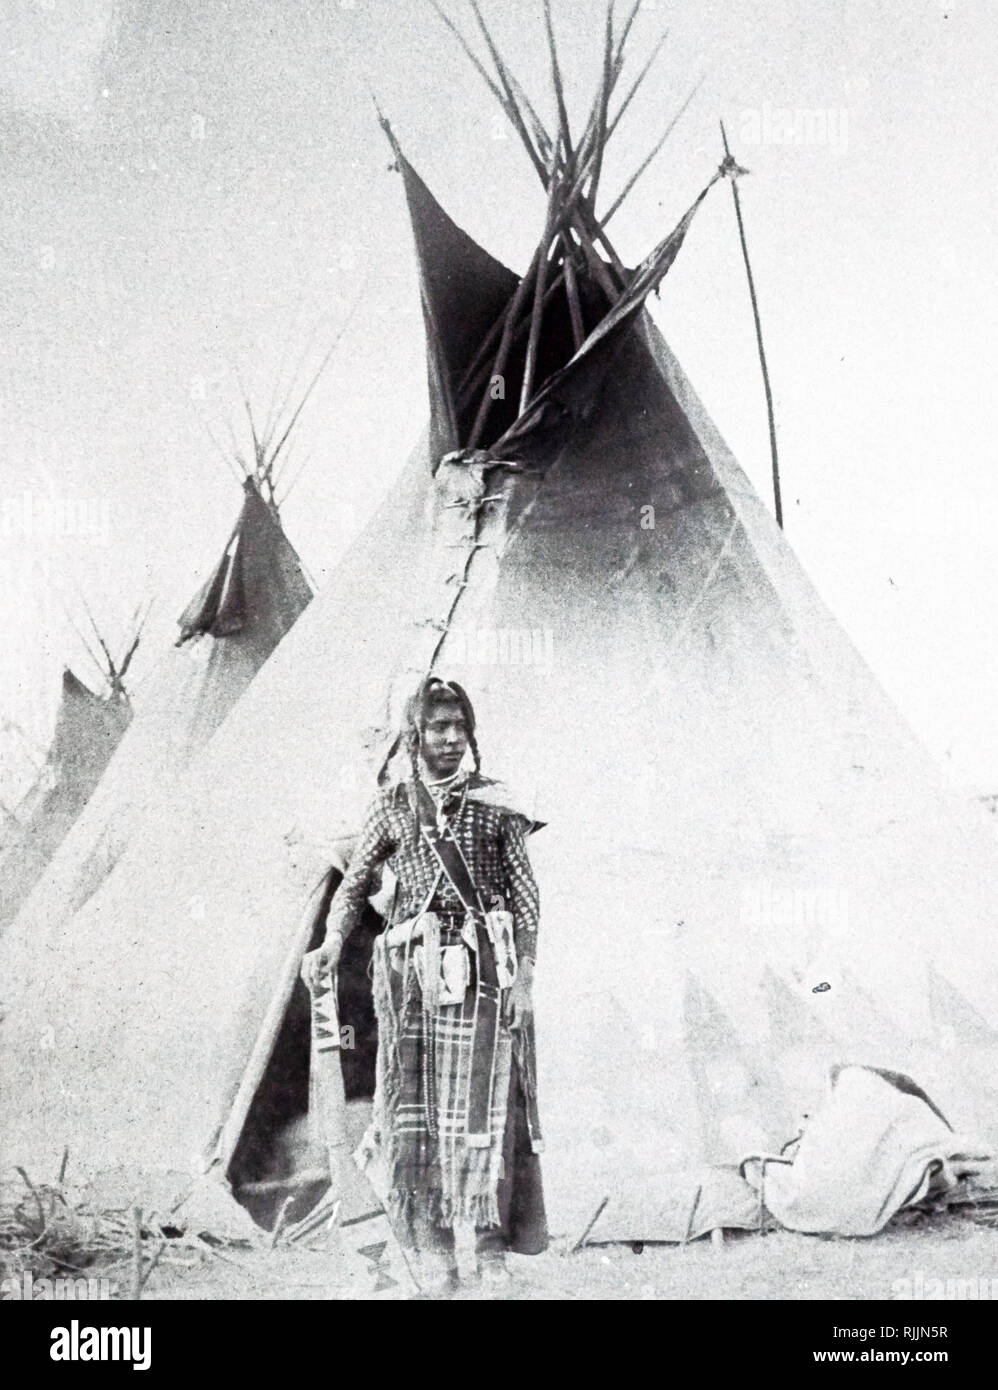 A photograph of a young 'Black Foot' Indian outside his tent. Dated 19th century - Stock Image